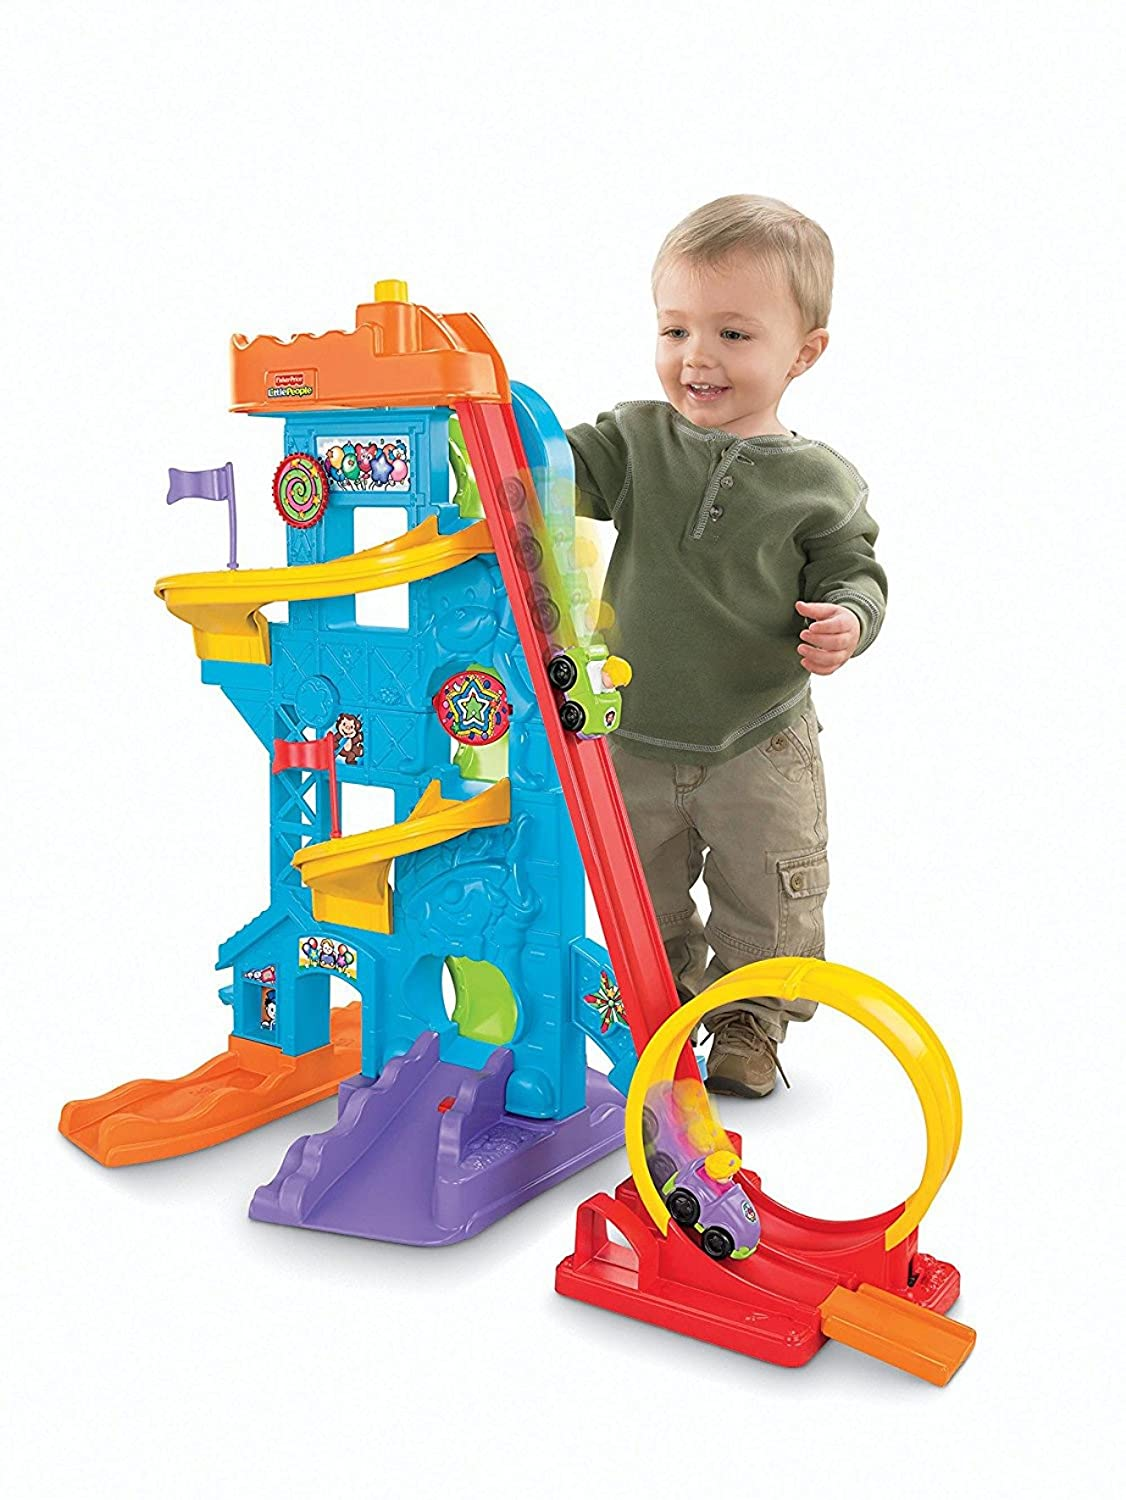 Top gifts for 3 year old for christmas